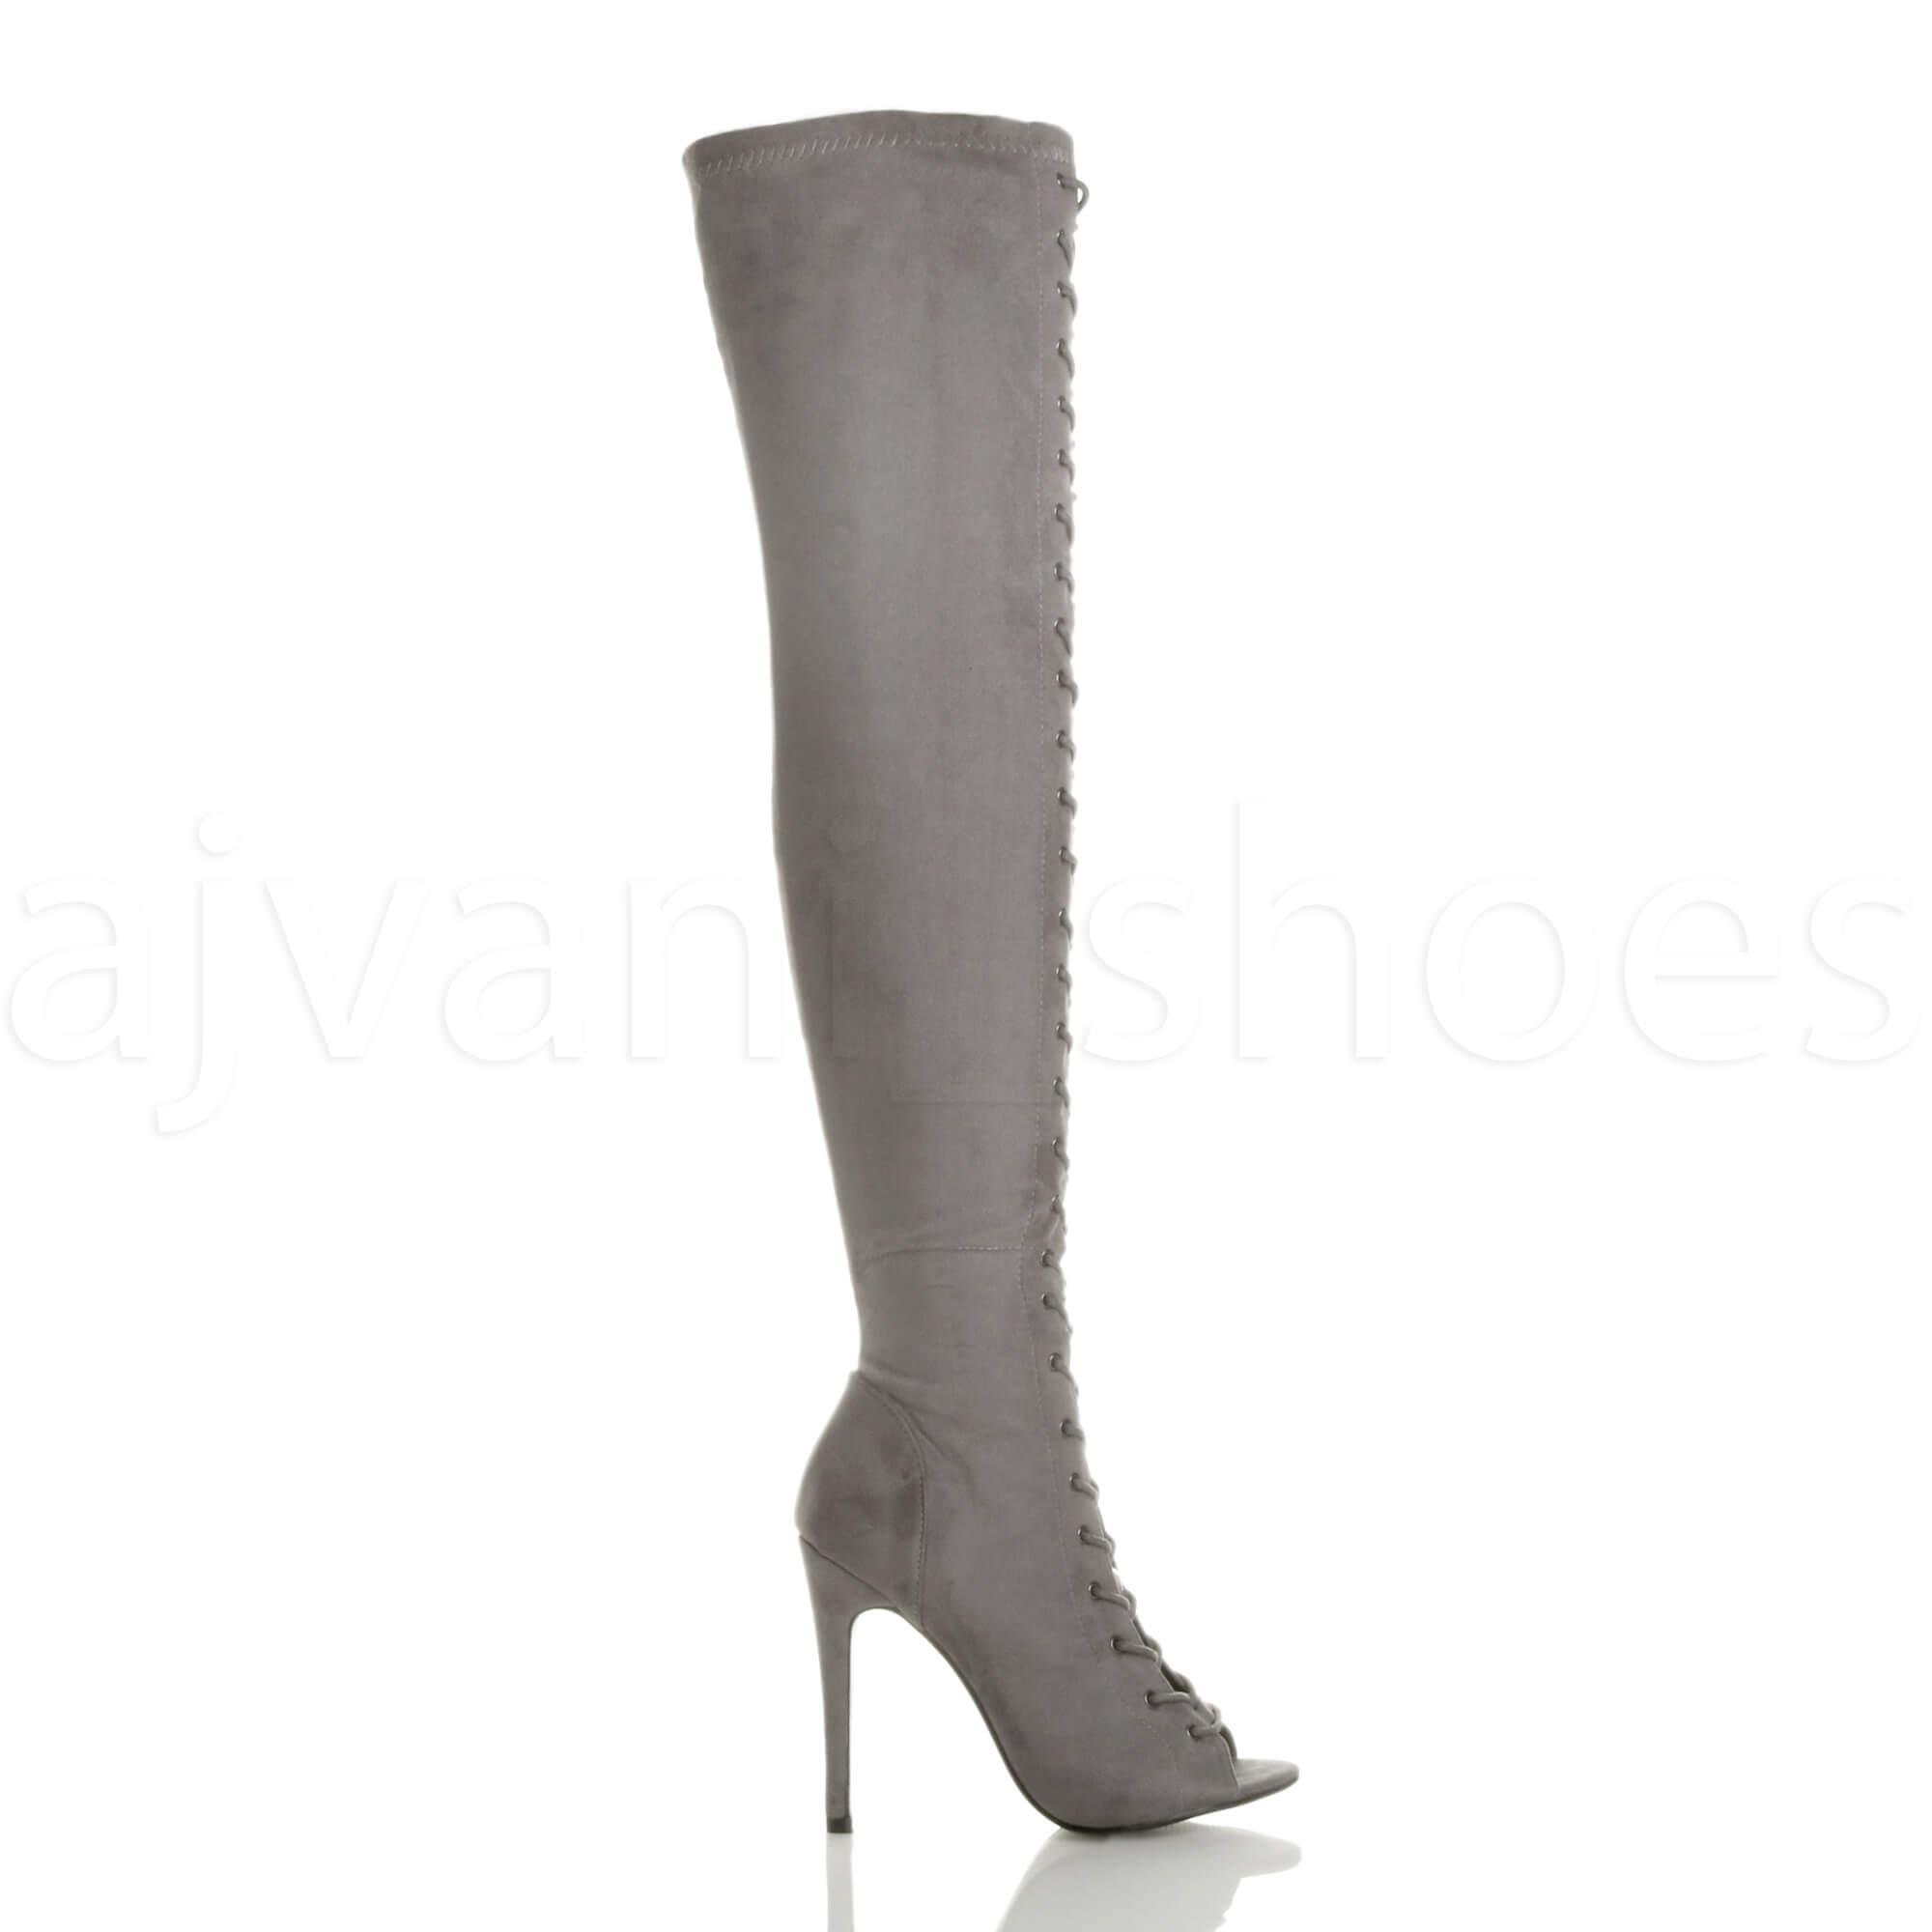 WOMENS-LADIES-HIGH-HEEL-STILETTO-LACE-UP-ZIP-CLUB-OVER-THE-KNEE-THIGH-BOOTS-SIZE